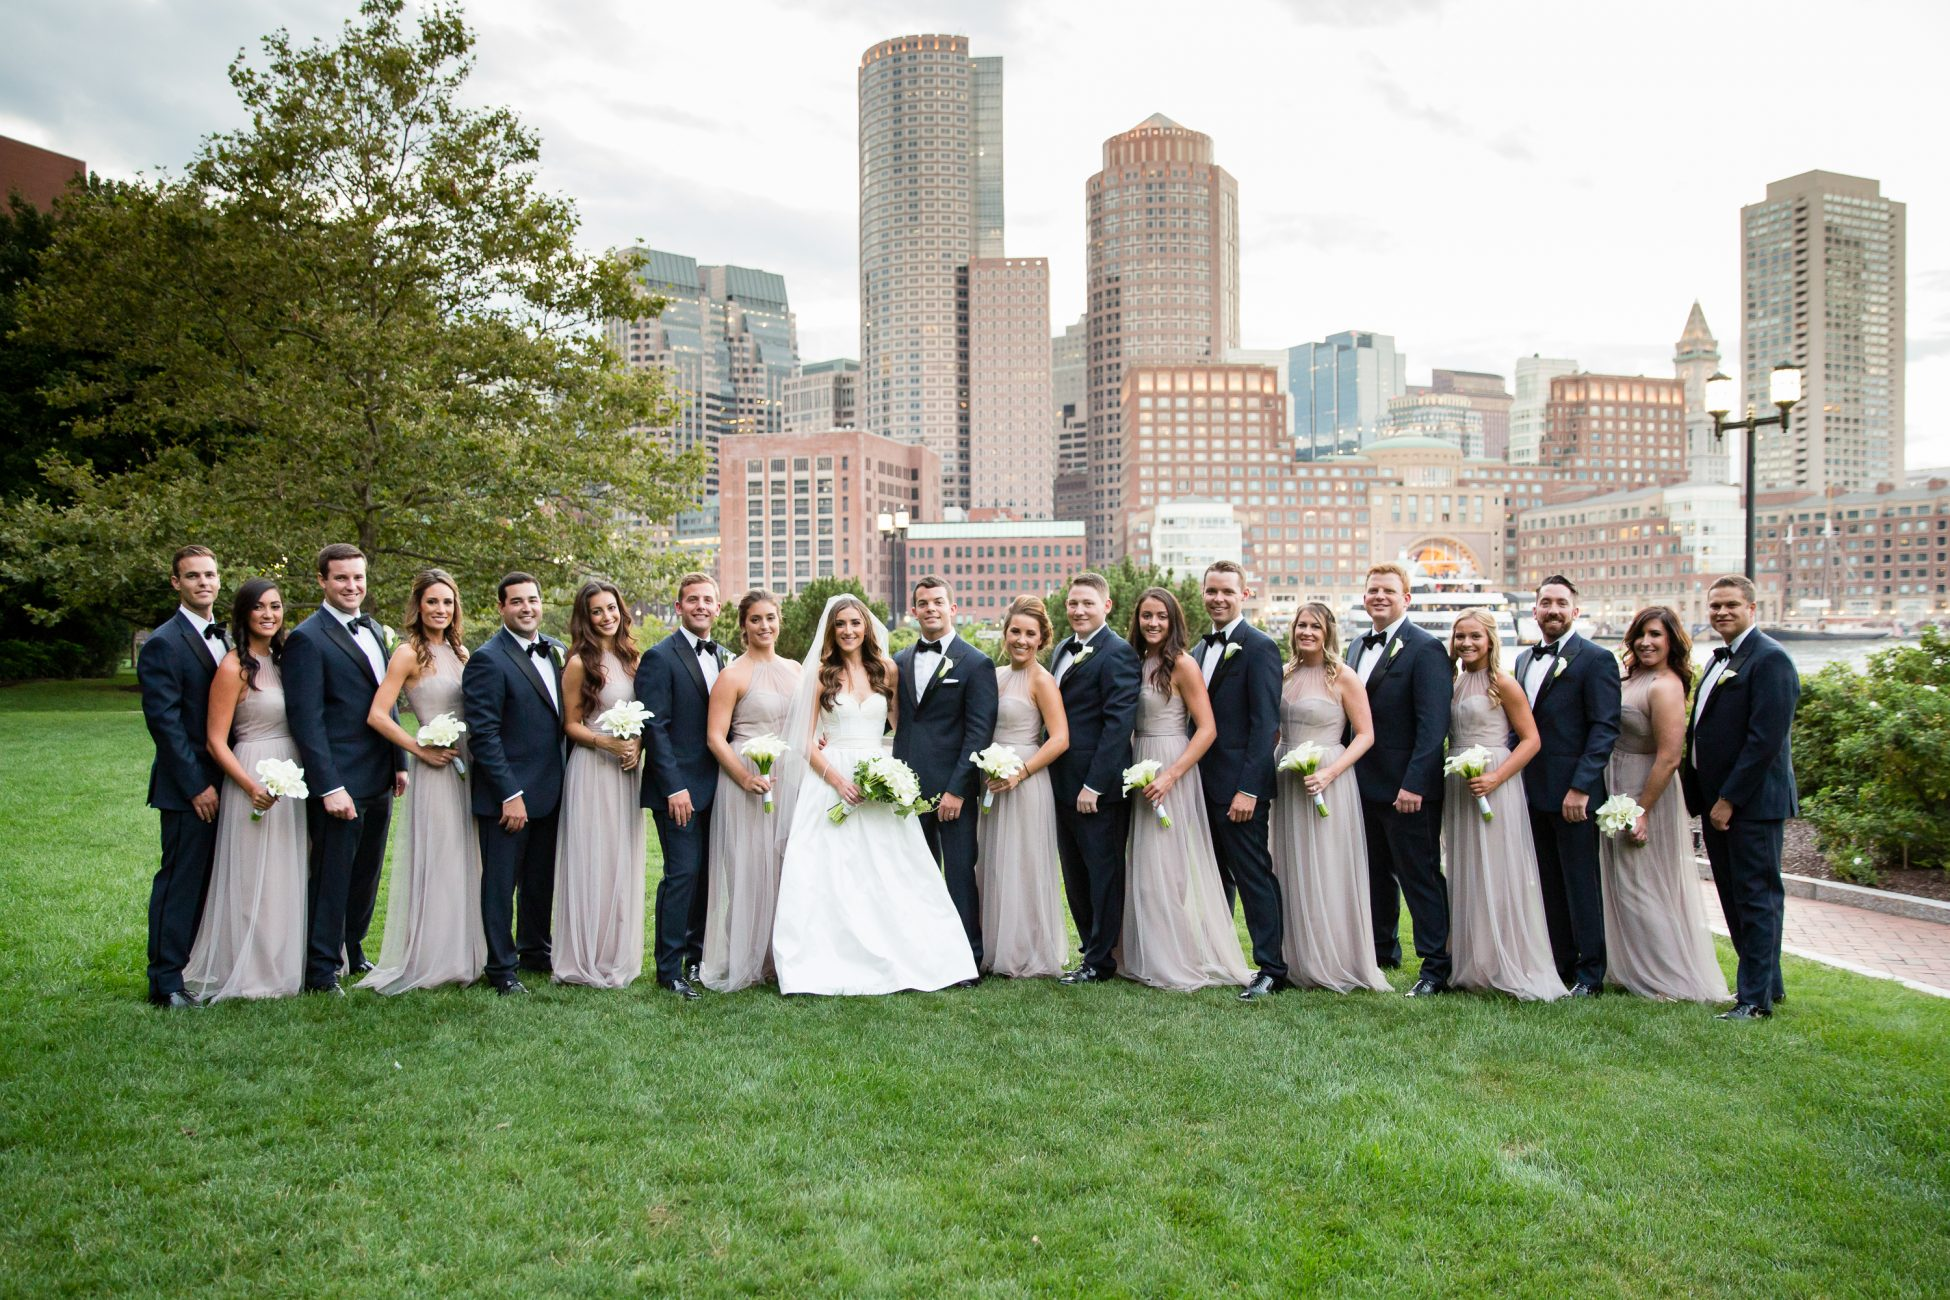 wedding party poses in front of the boston skyline at a state room wedding